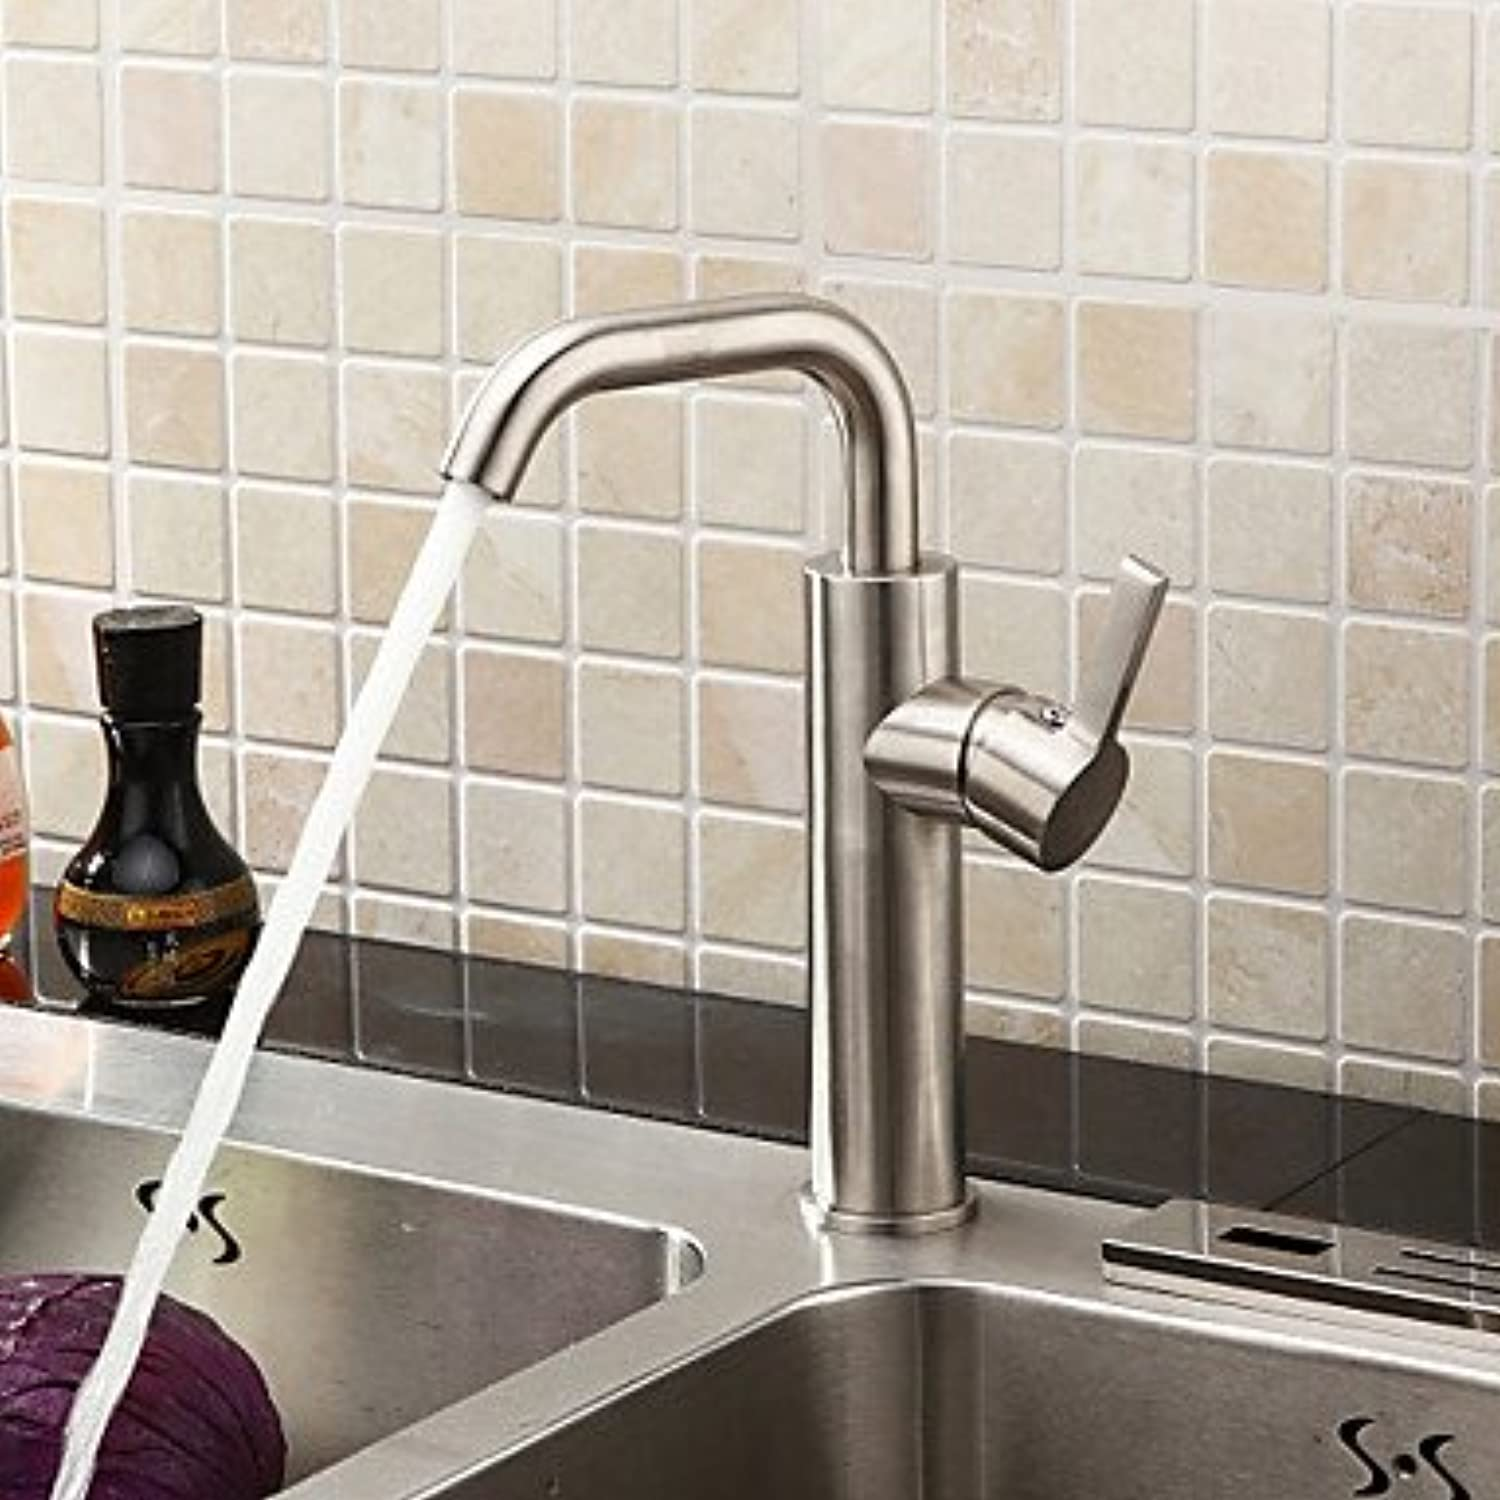 Bari-Sprinkle by Lightinthebox - Brushed Chrome Finish Stainless Steel Contemporary Kitchen Faucet